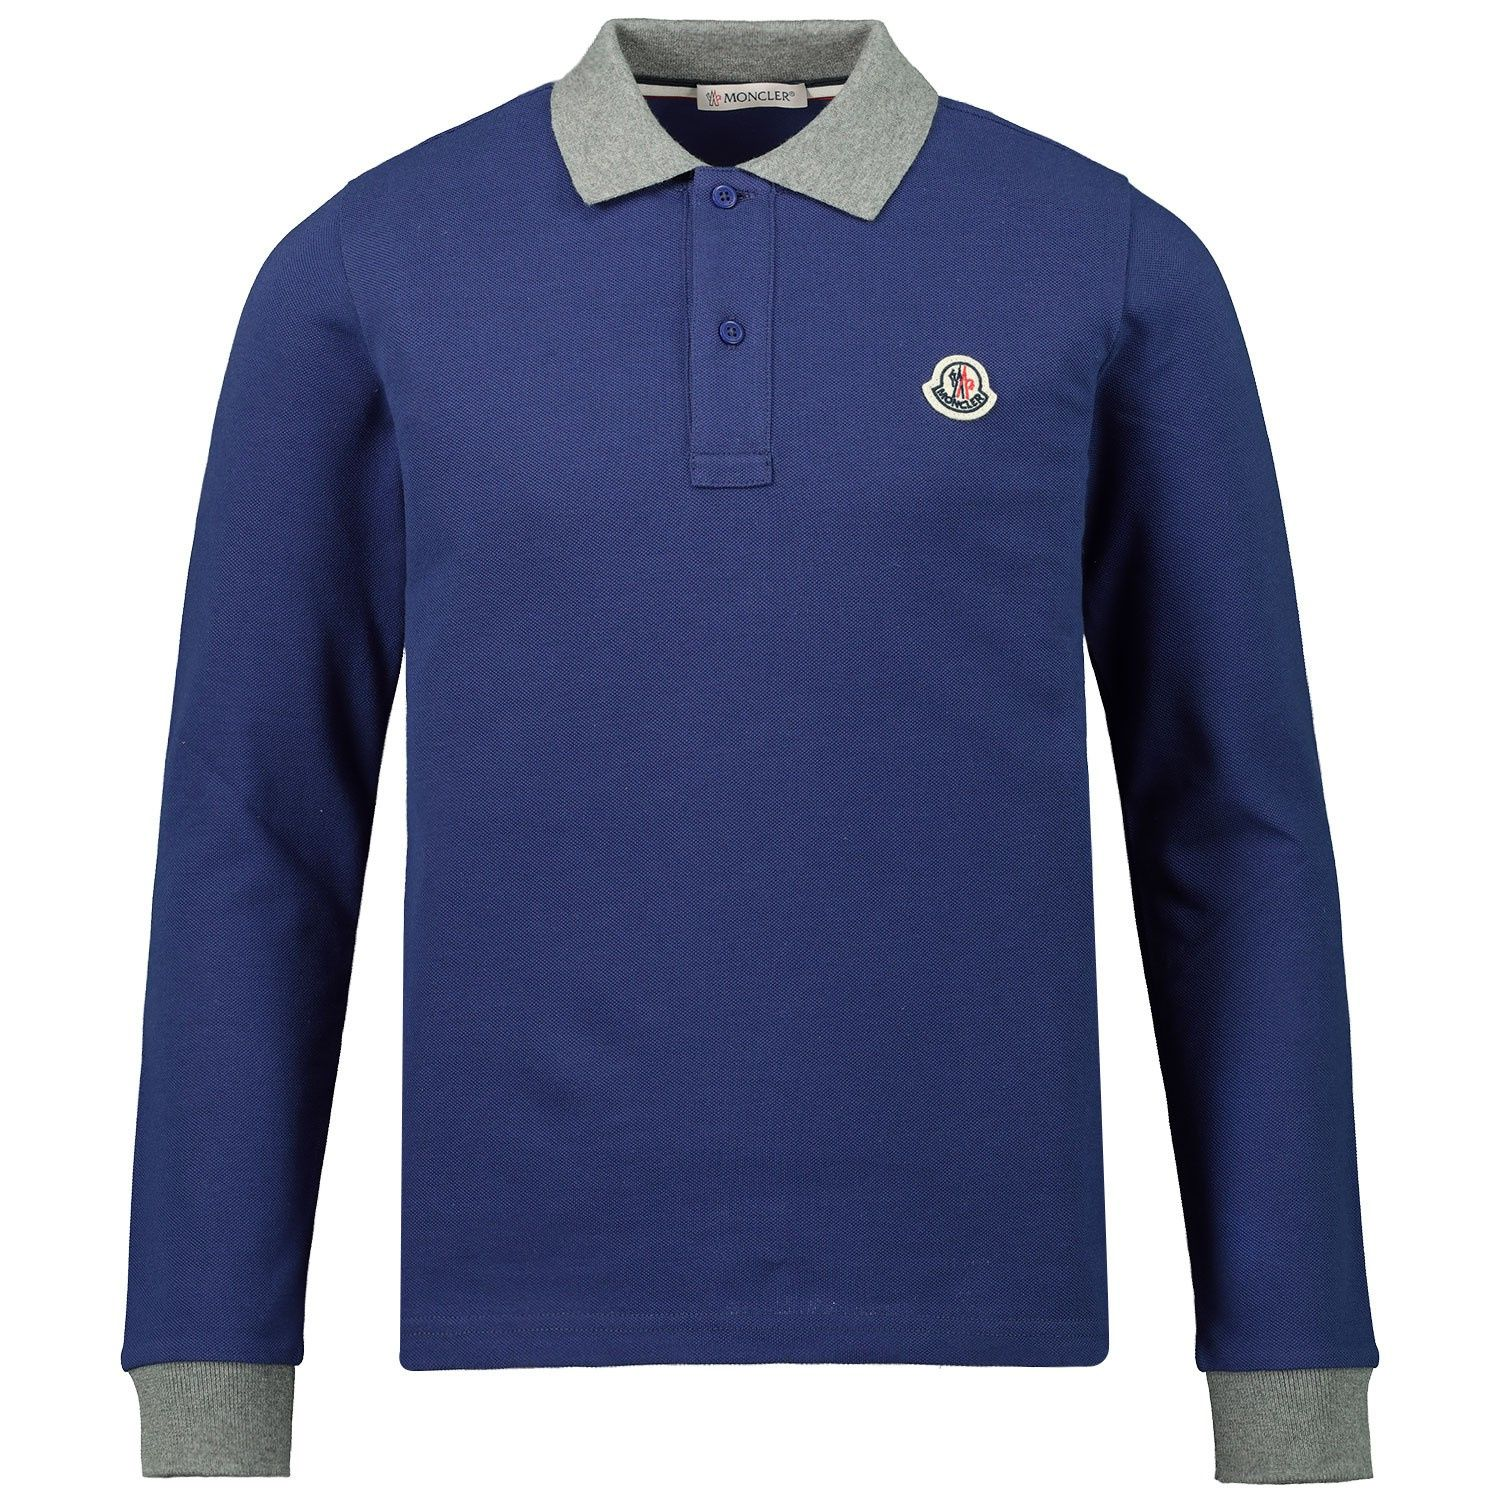 Picture of Moncler 8B70820 kids polo shirt cobalt blue